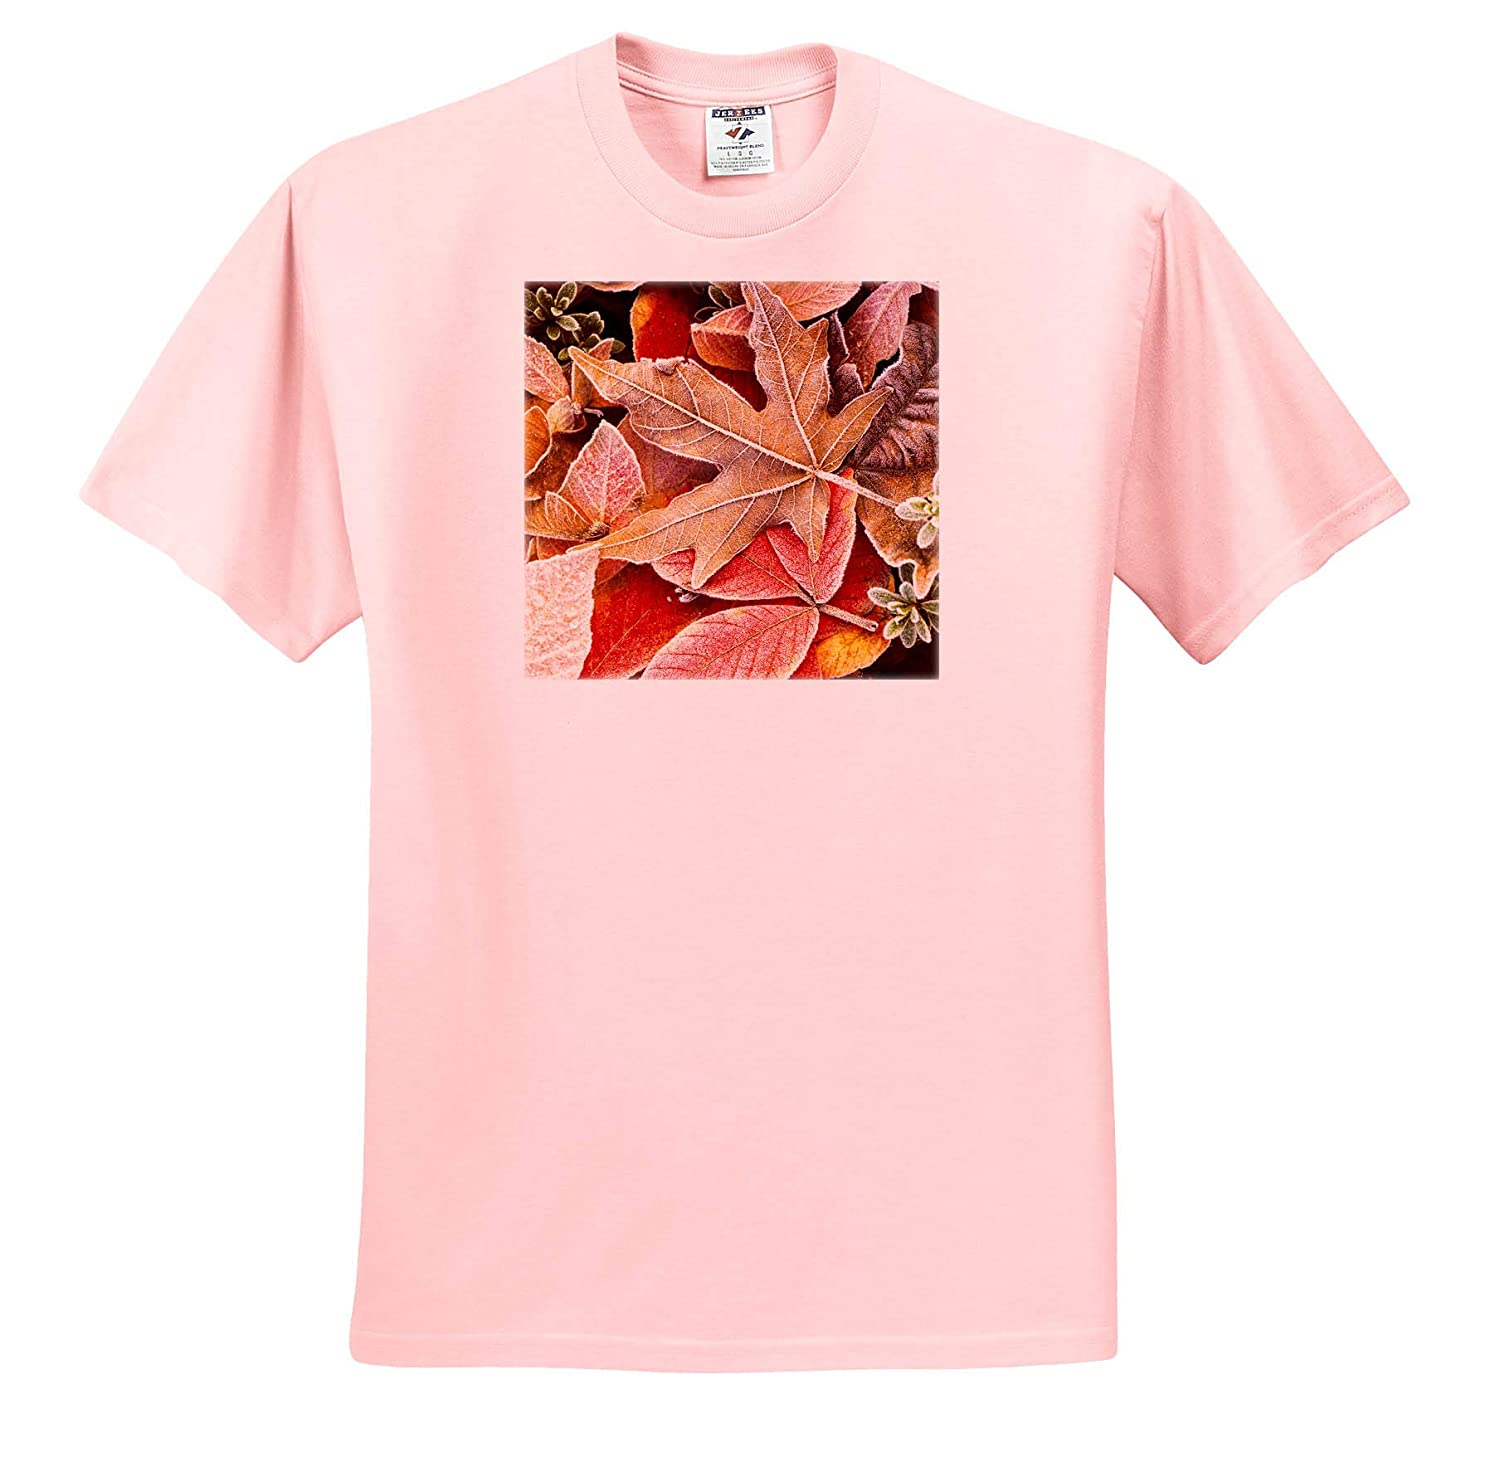 ts/_313925 Autumn Leaves on The Ground Covered in Frost - Adult T-Shirt XL Autumn 3dRose Danita Delimont